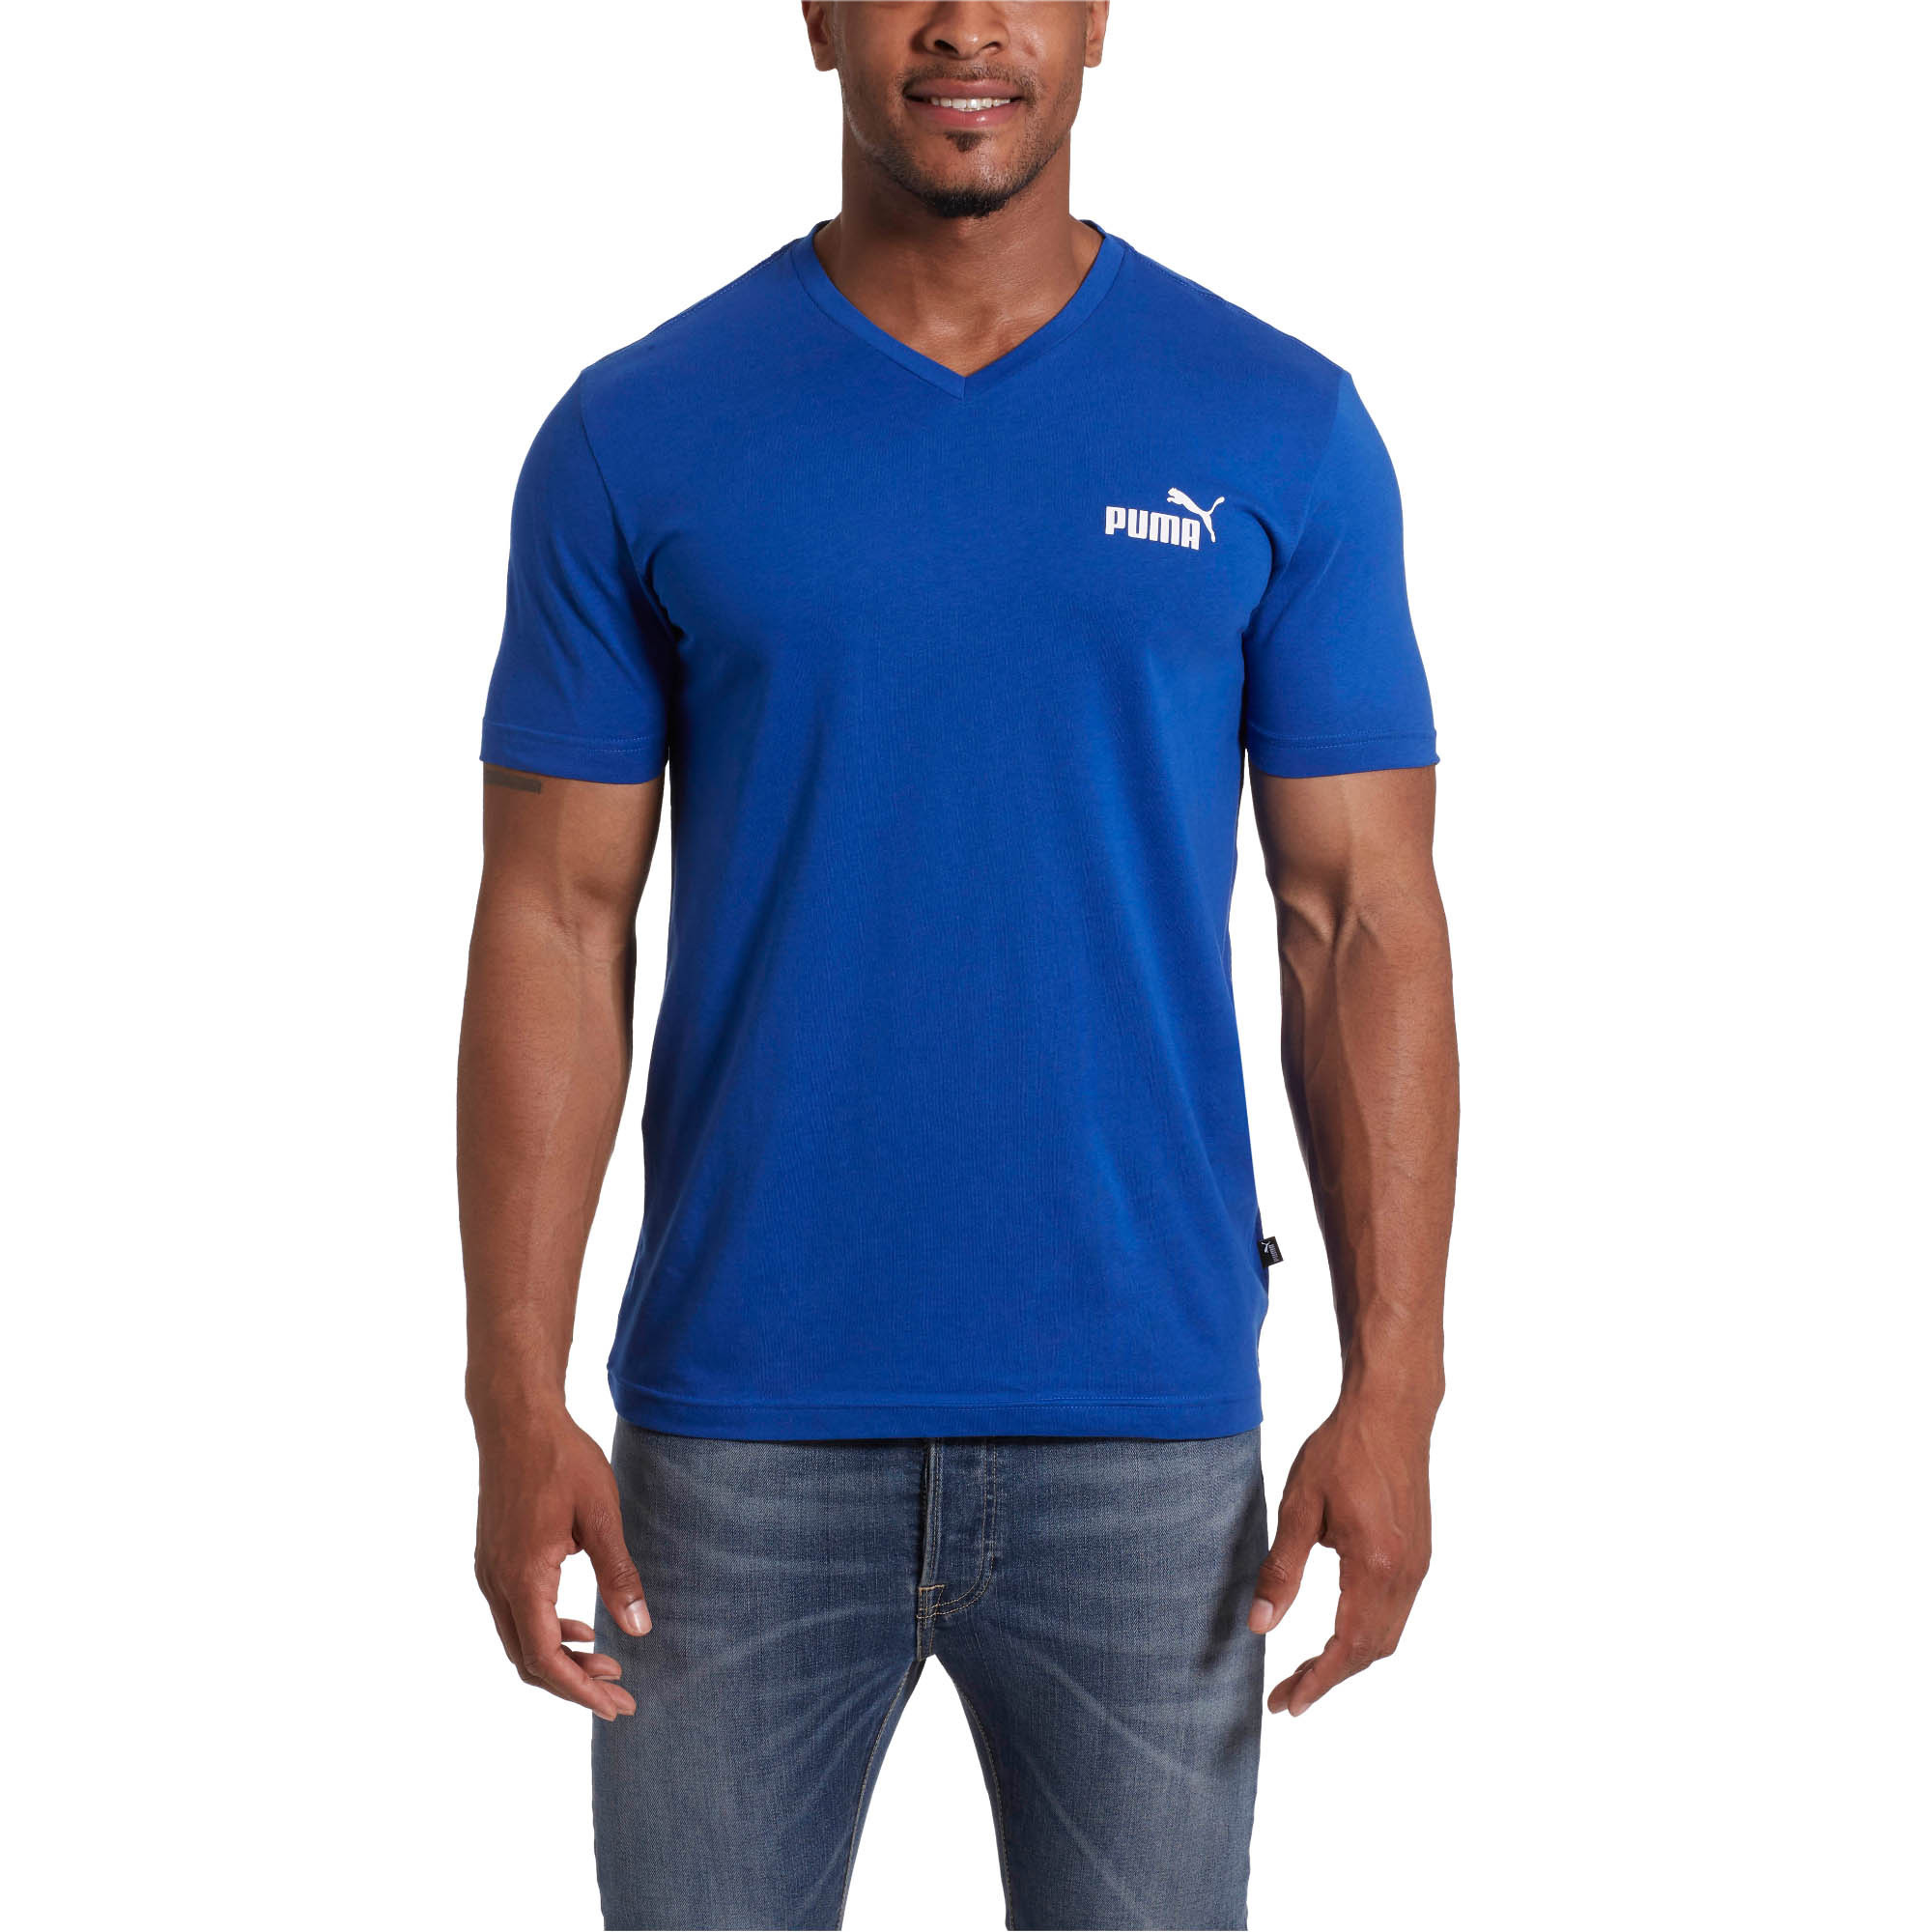 PUMA-Essentials-Men-039-s-V-Neck-Tee-Men-Tee-Basics thumbnail 24